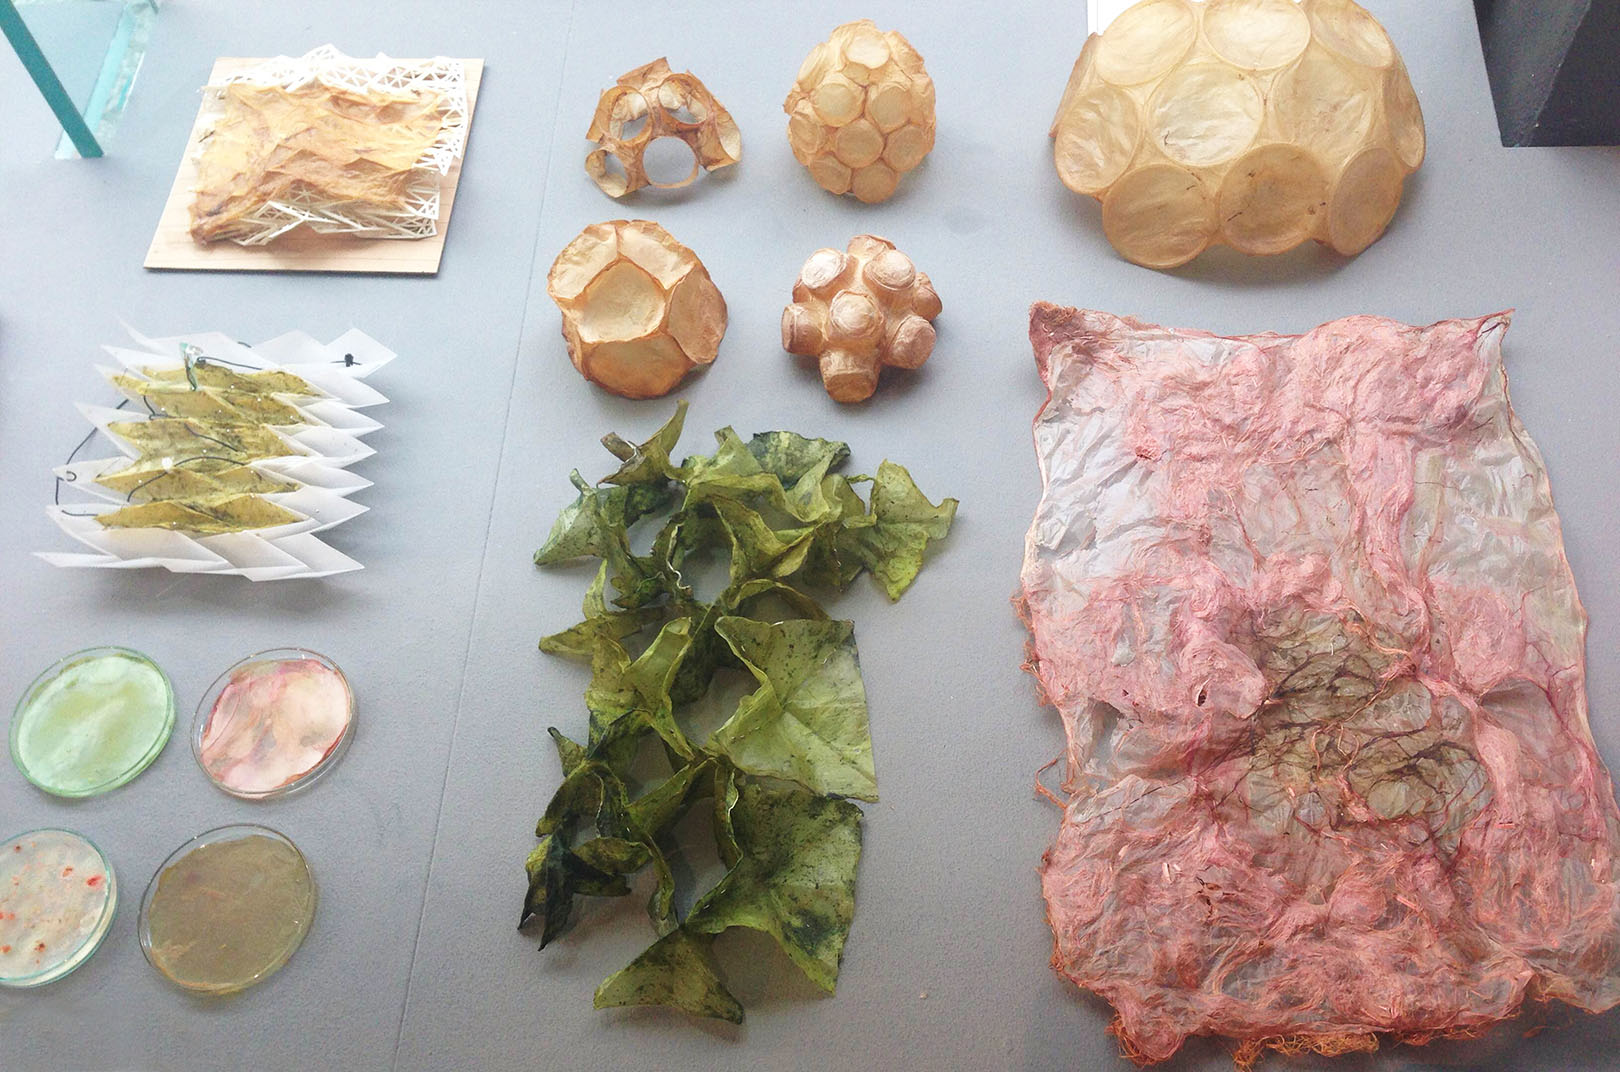 ecoLogicStudio with  Urban Morphogenesis Lab present microbial cellulose in different manipulated states, including a textile-like form seen above.